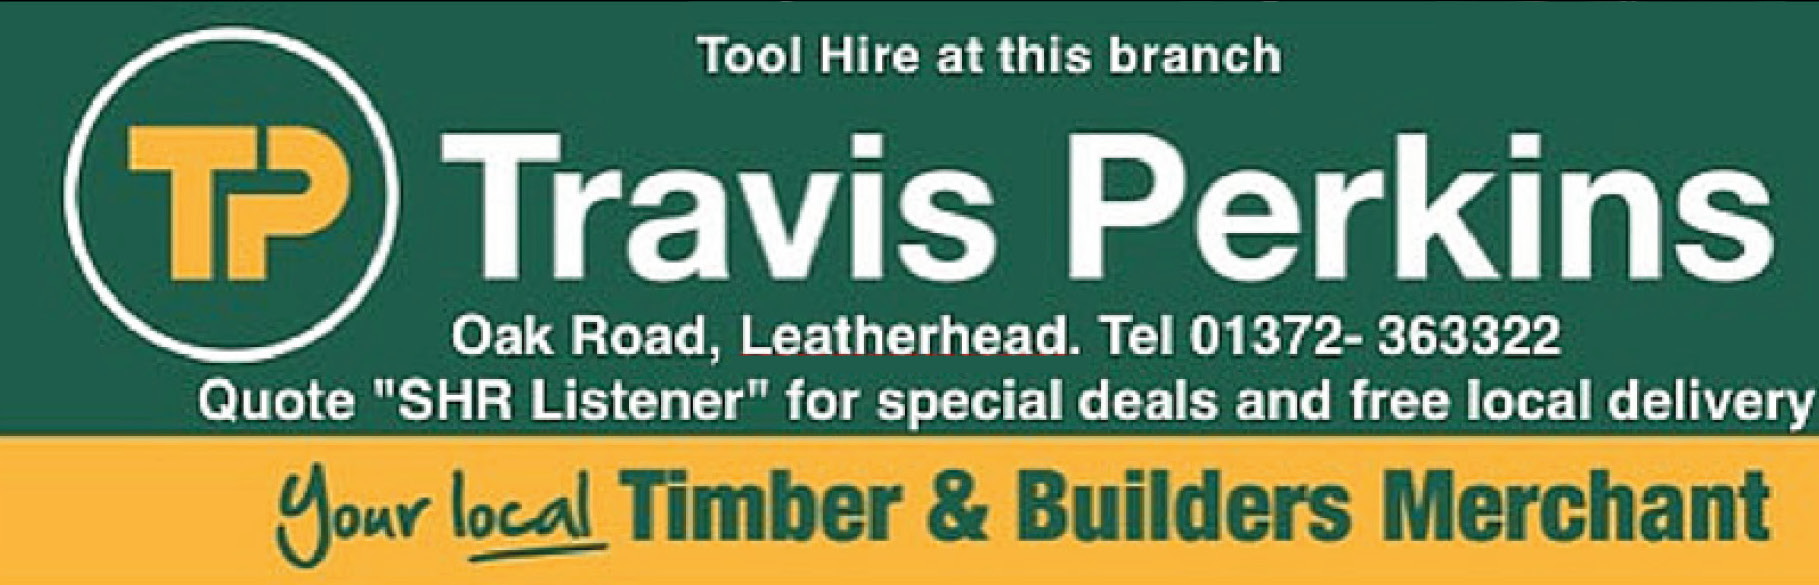 Club Culture sponsored by Travis Perkins, Leatherhead